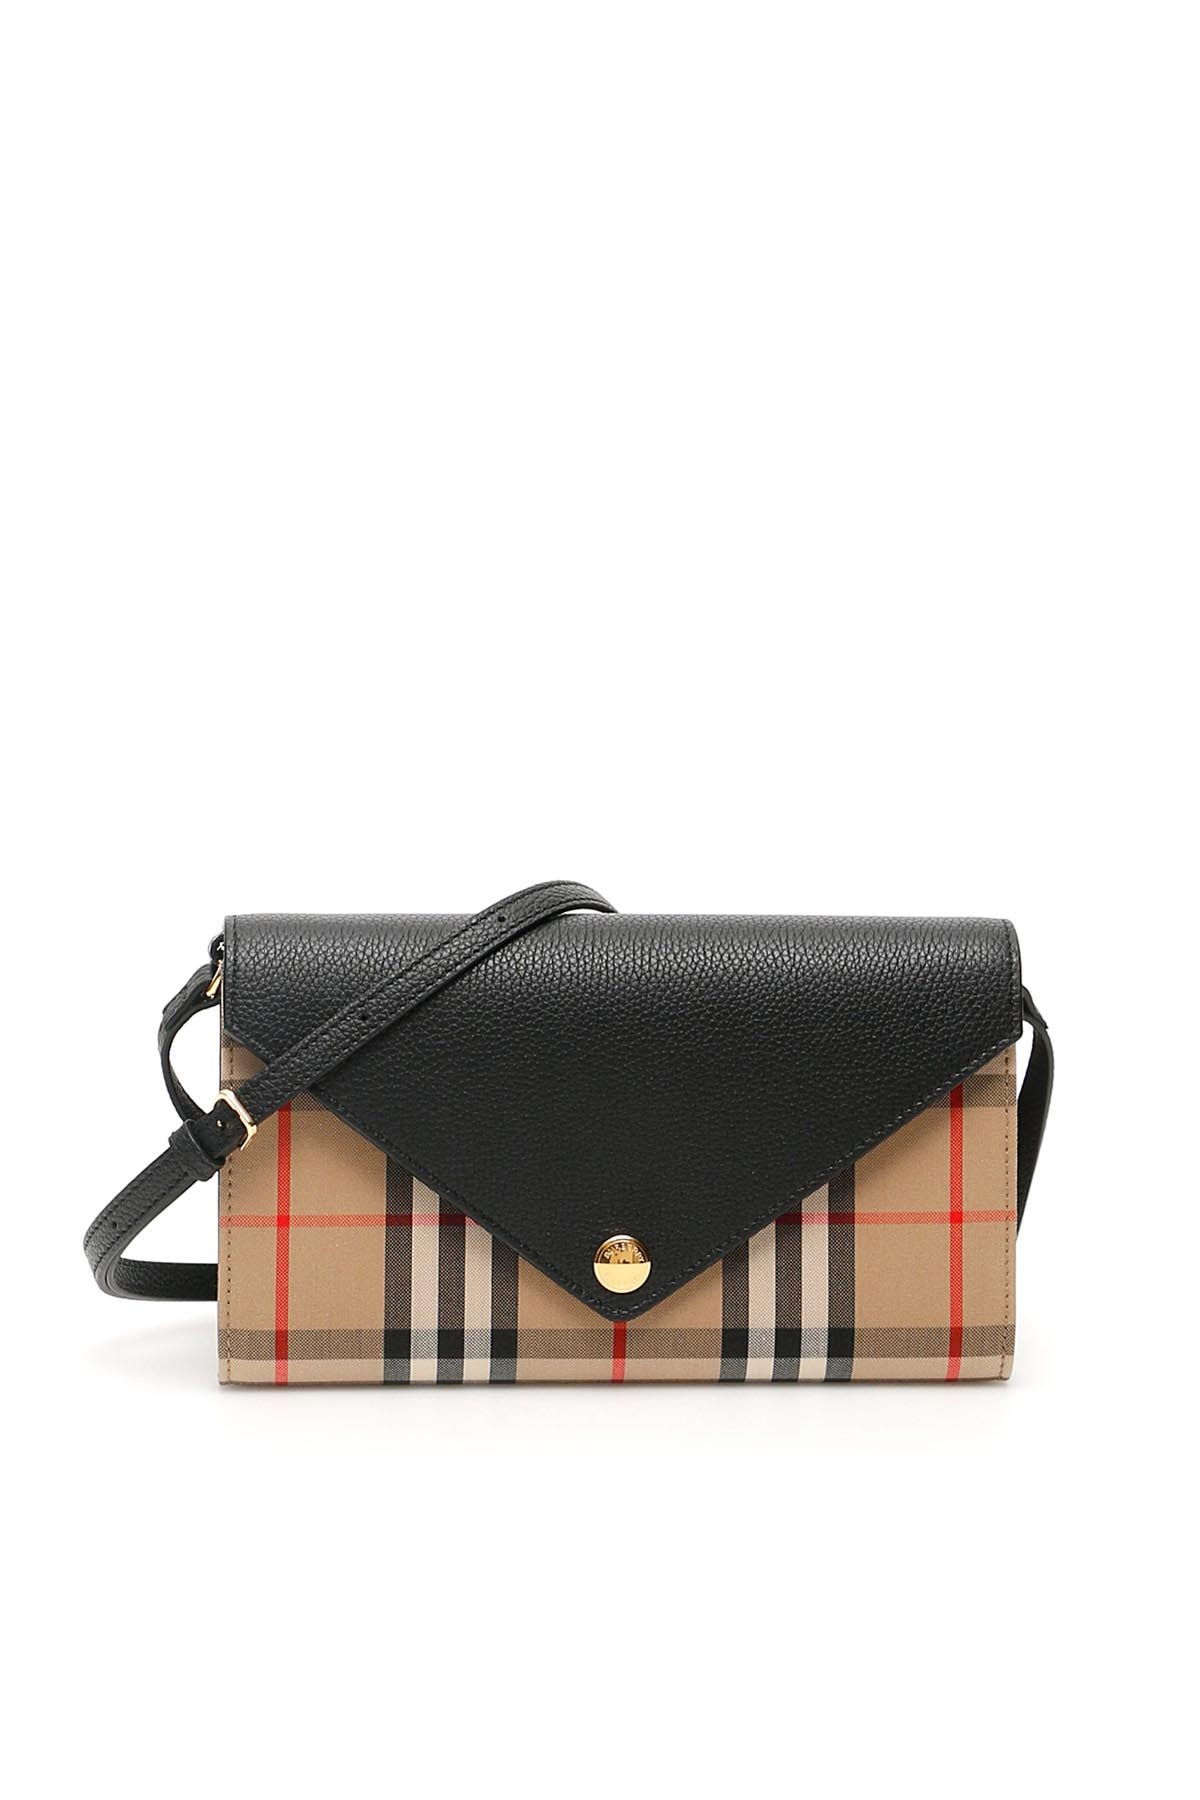 BURBERRY HANNA WALLET WITH SHOULDER STRAP OS Beige Cotton, Leather